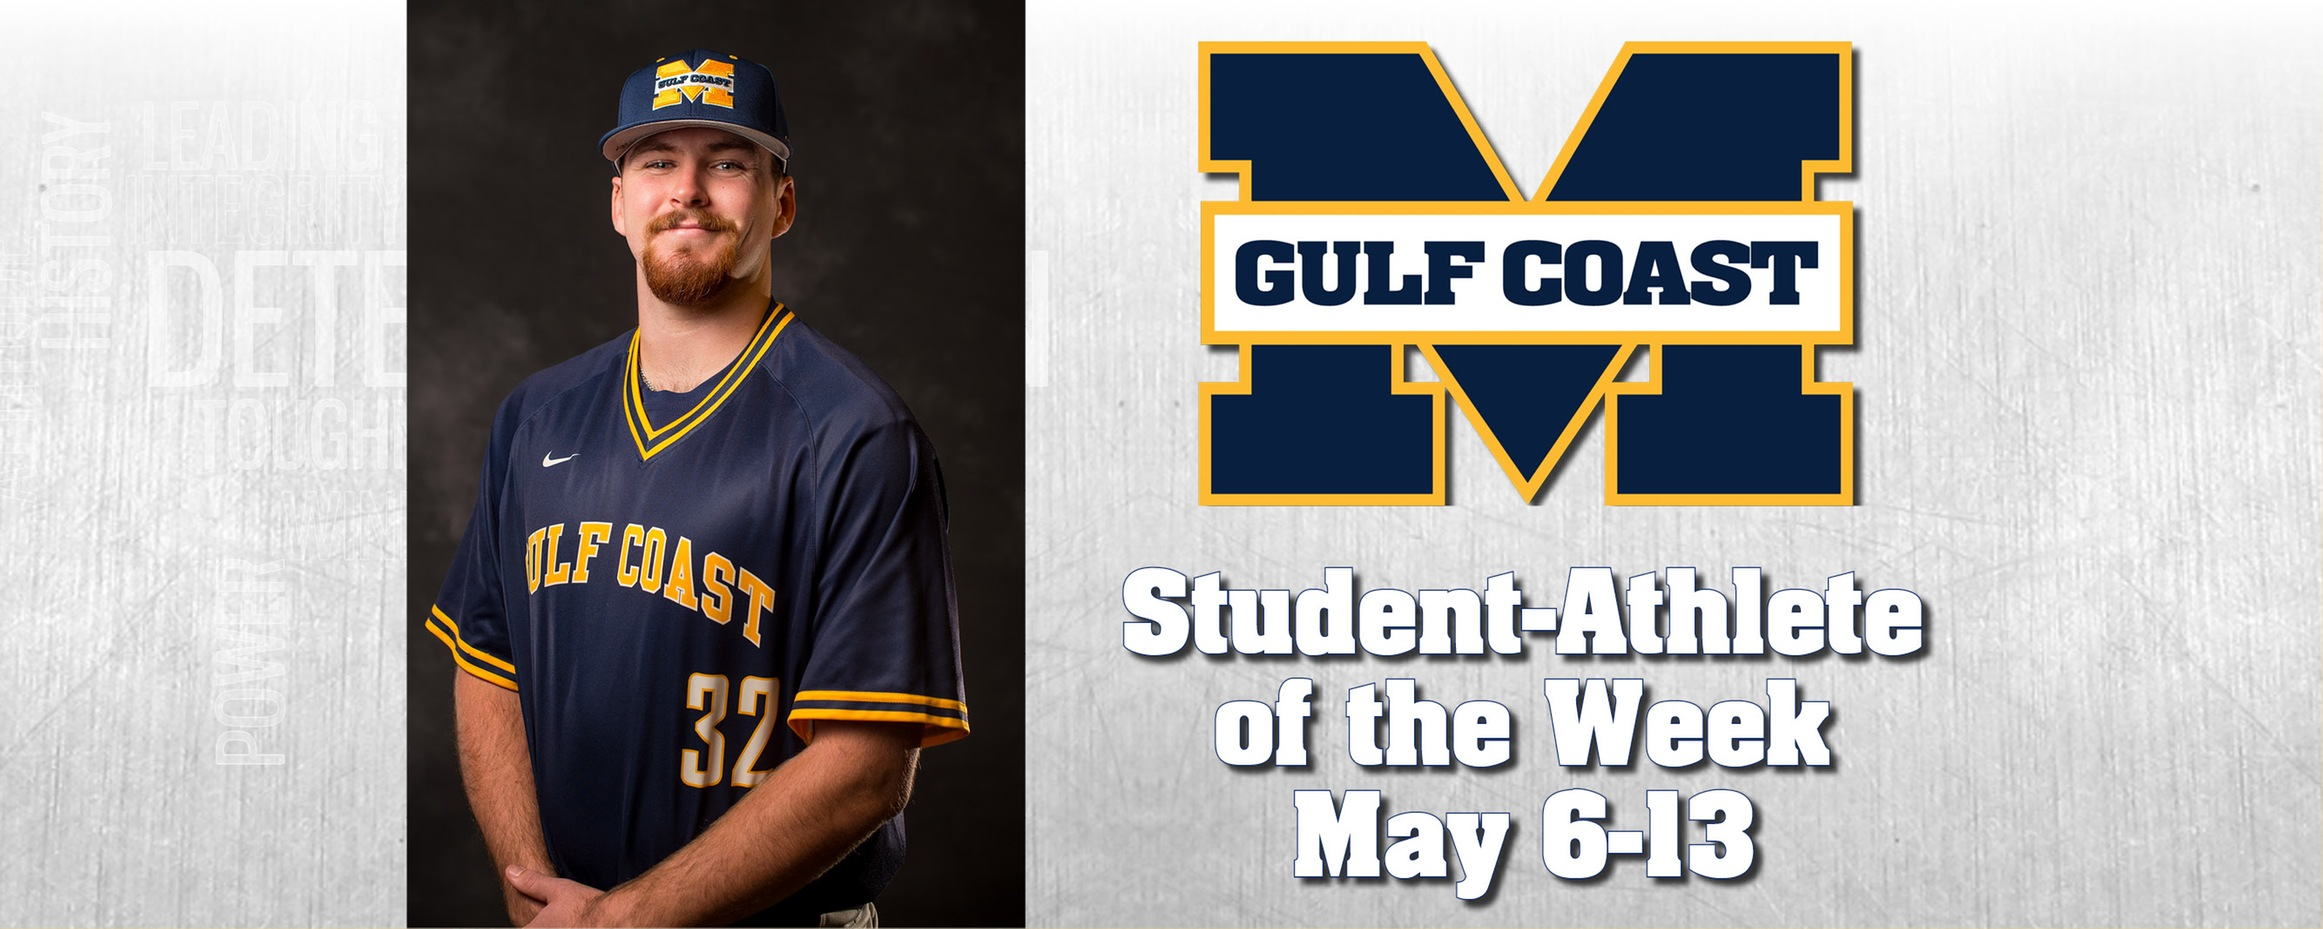 McGrew named MGCCC Student-Athlete of the Week